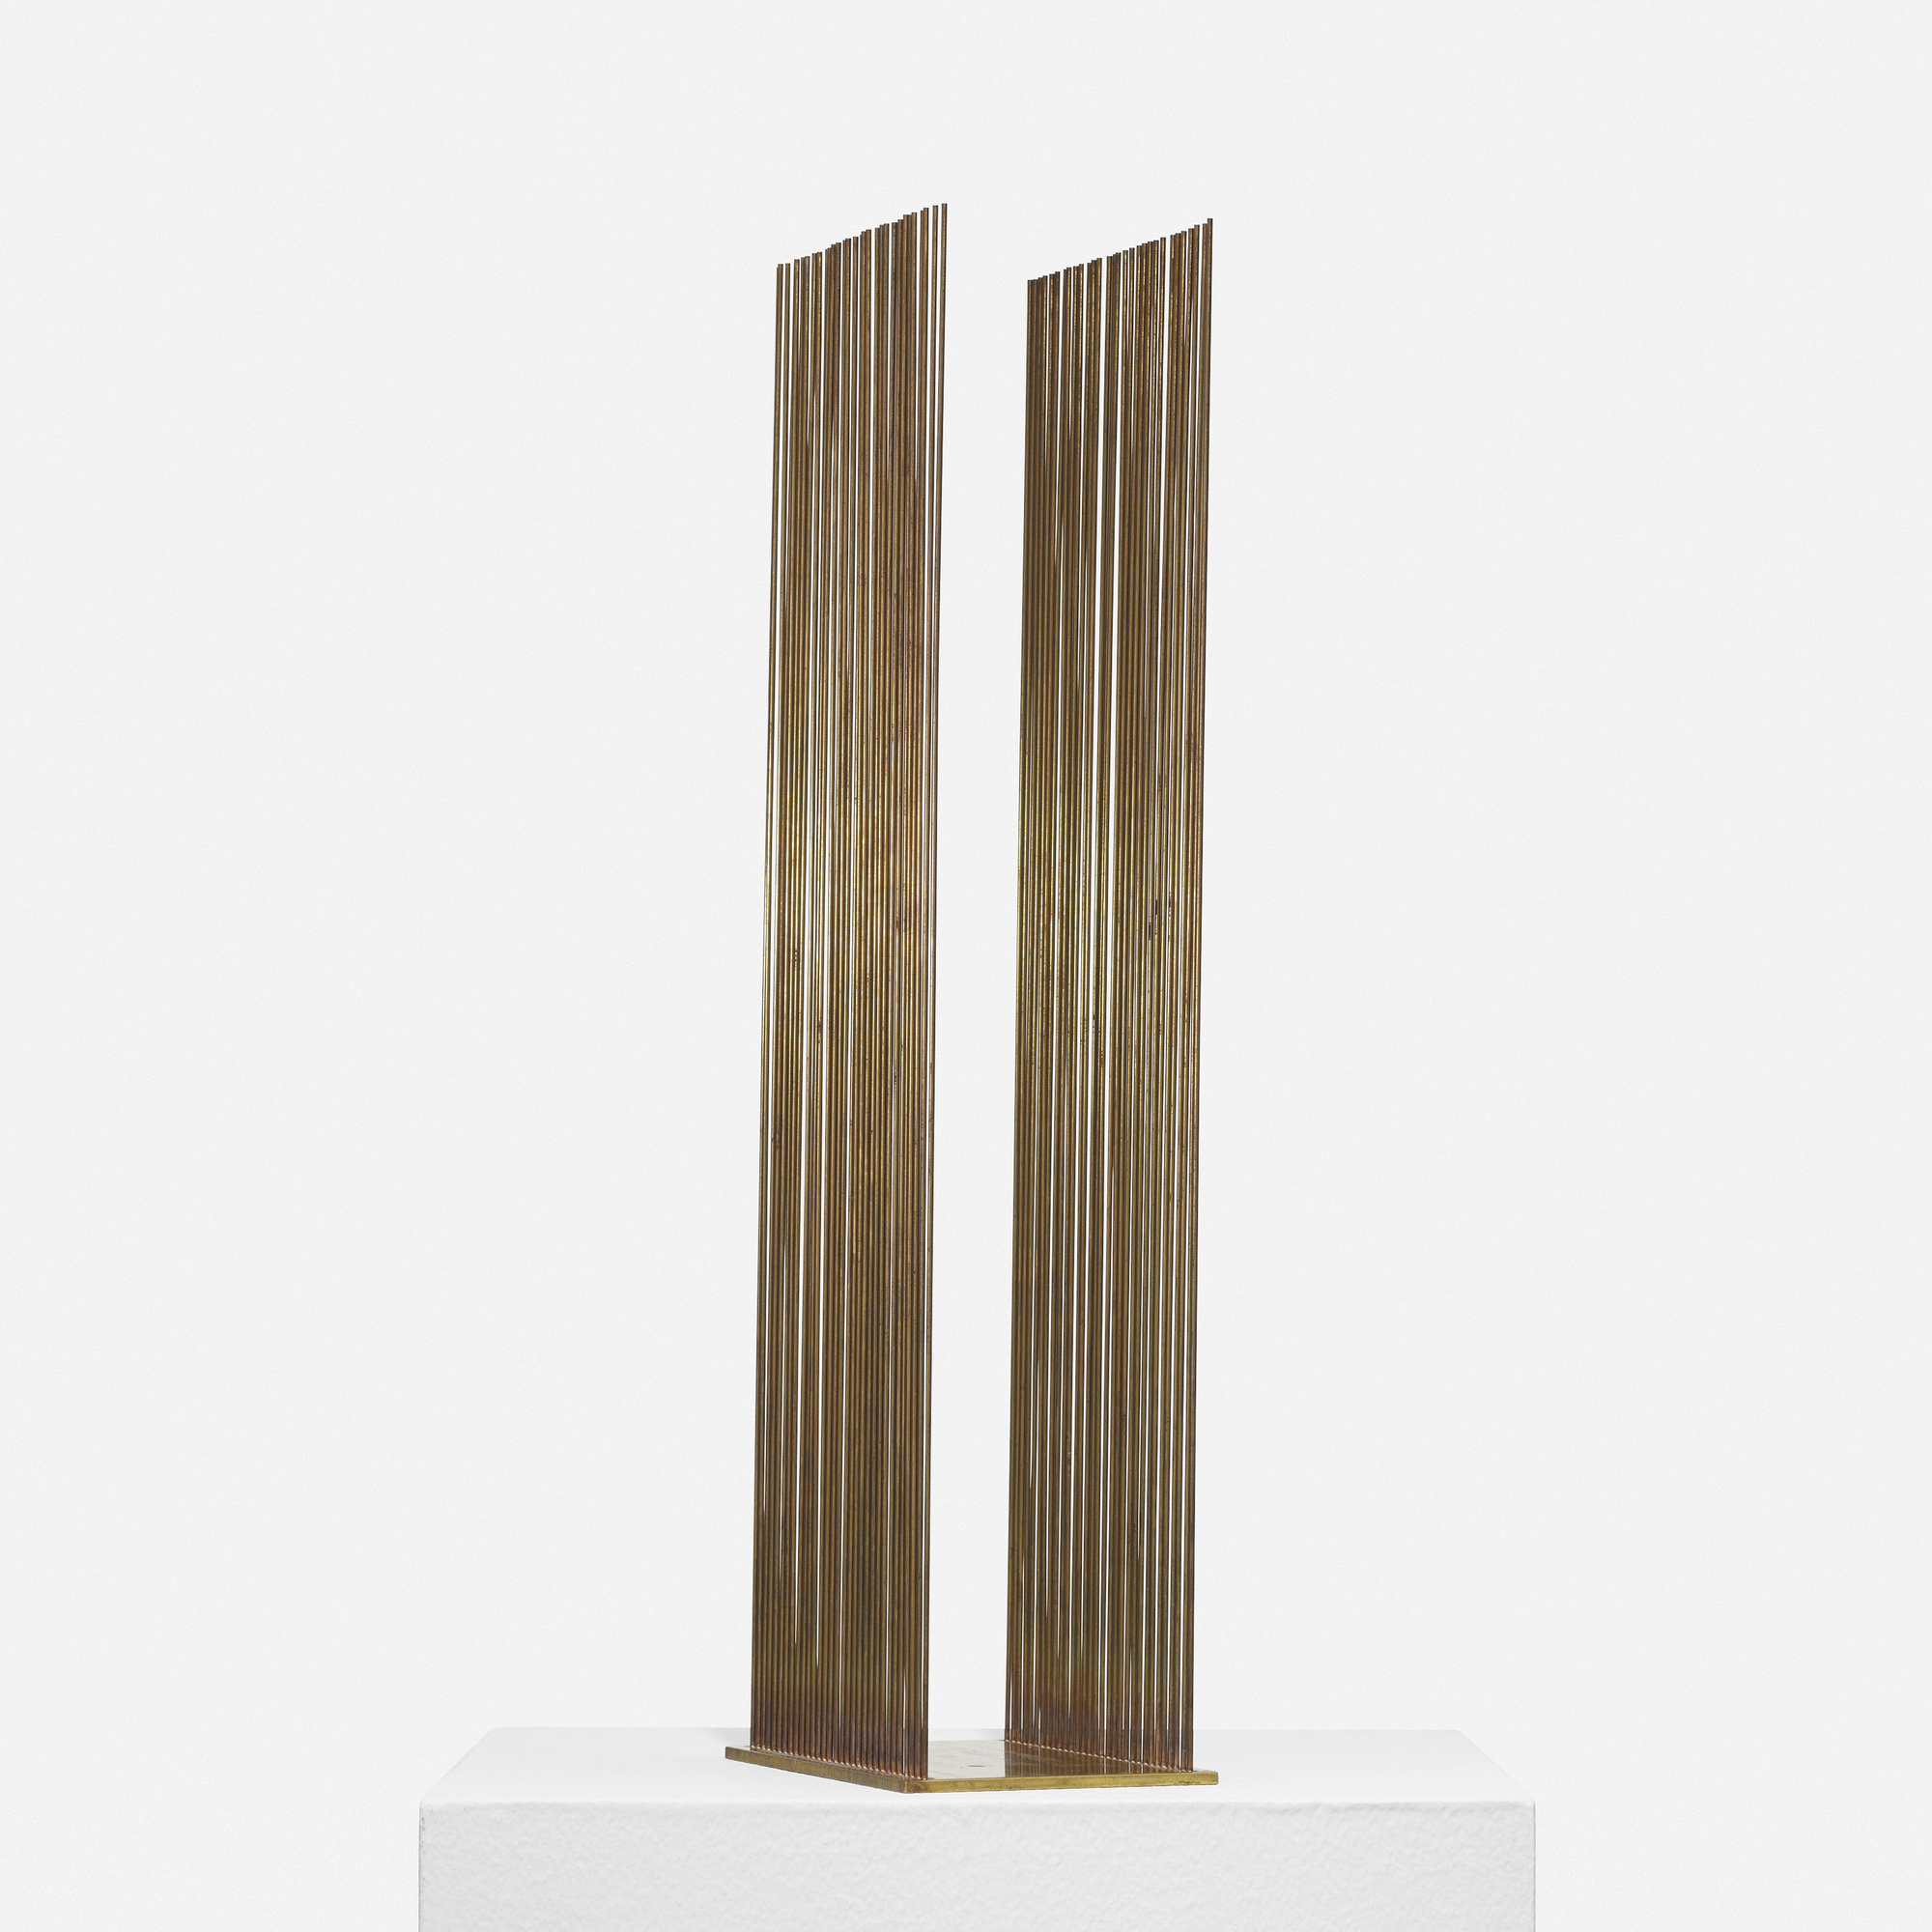 134: Harry Bertoia / Untitled (Sonambient) from the Standard Oil Commission (2 of 4)